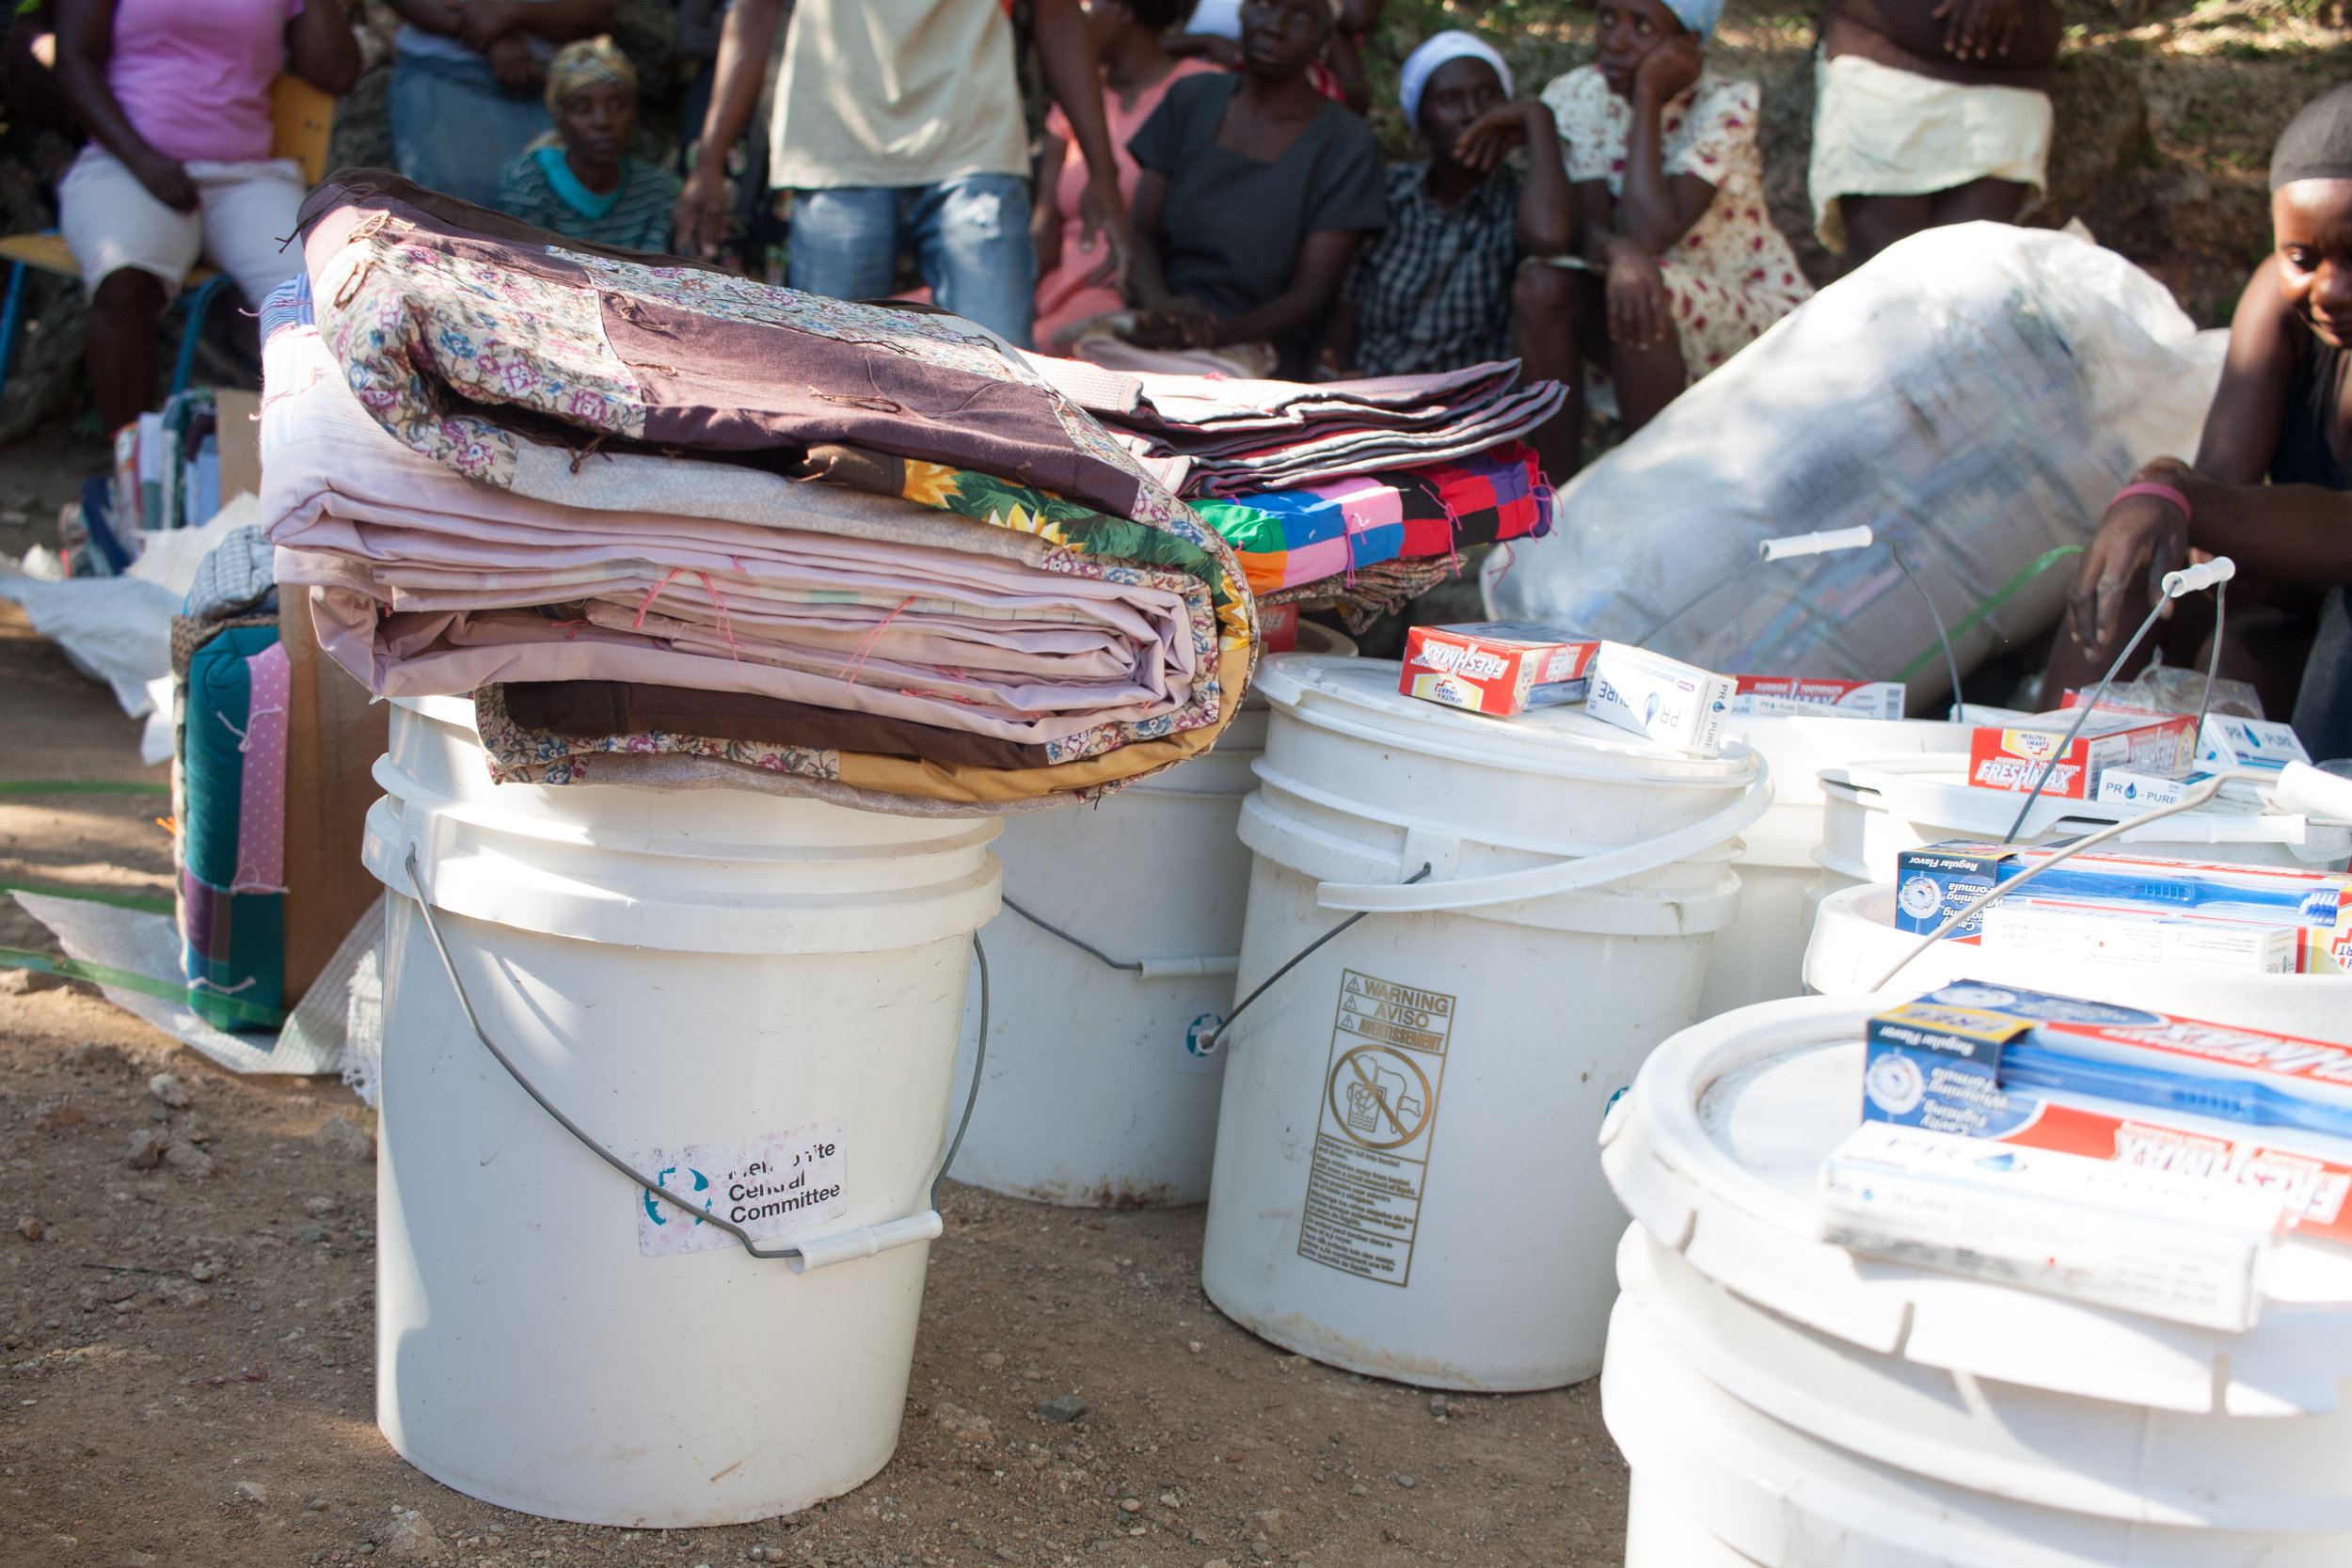 Even in a hot climate like Haiti, comforters can be tremendously useful, providing a soft surface to sleep on if mattresses or other blankets have gotten damp as a result of damaged roofs or walls. MCC Photo/Annalee Giesbrecht